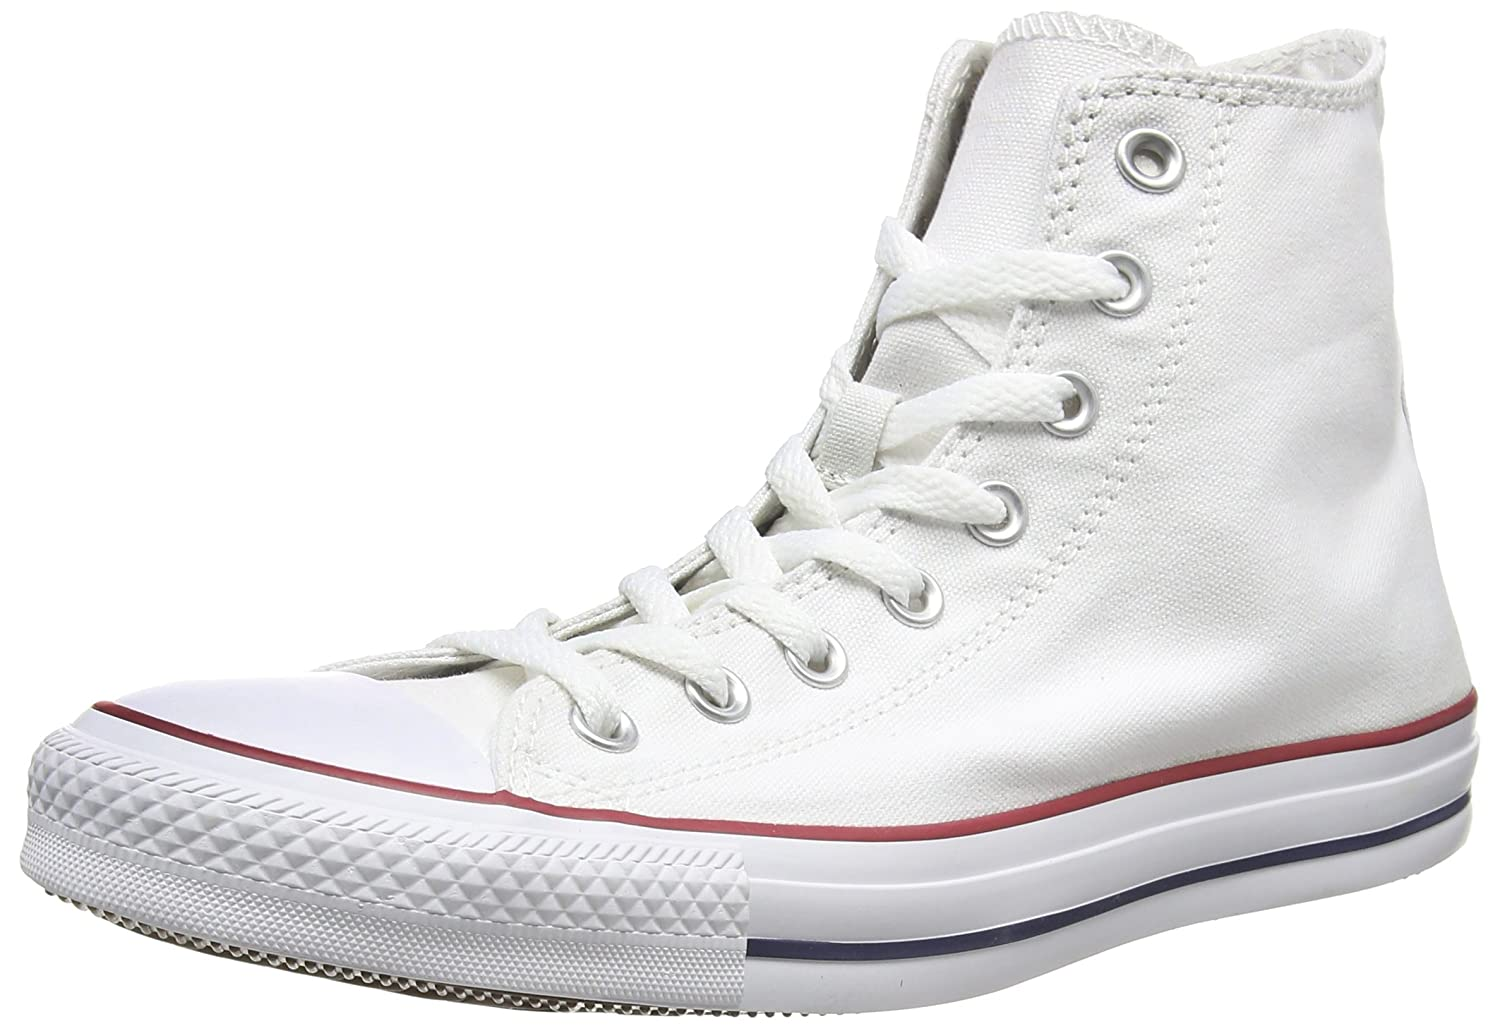 Converse Chuck Taylor All Star Seasonal Color Hi B01M2C5CJ3 37 M EU / 6.5 B(M) US Women / 4.5 D(M) US Men|White